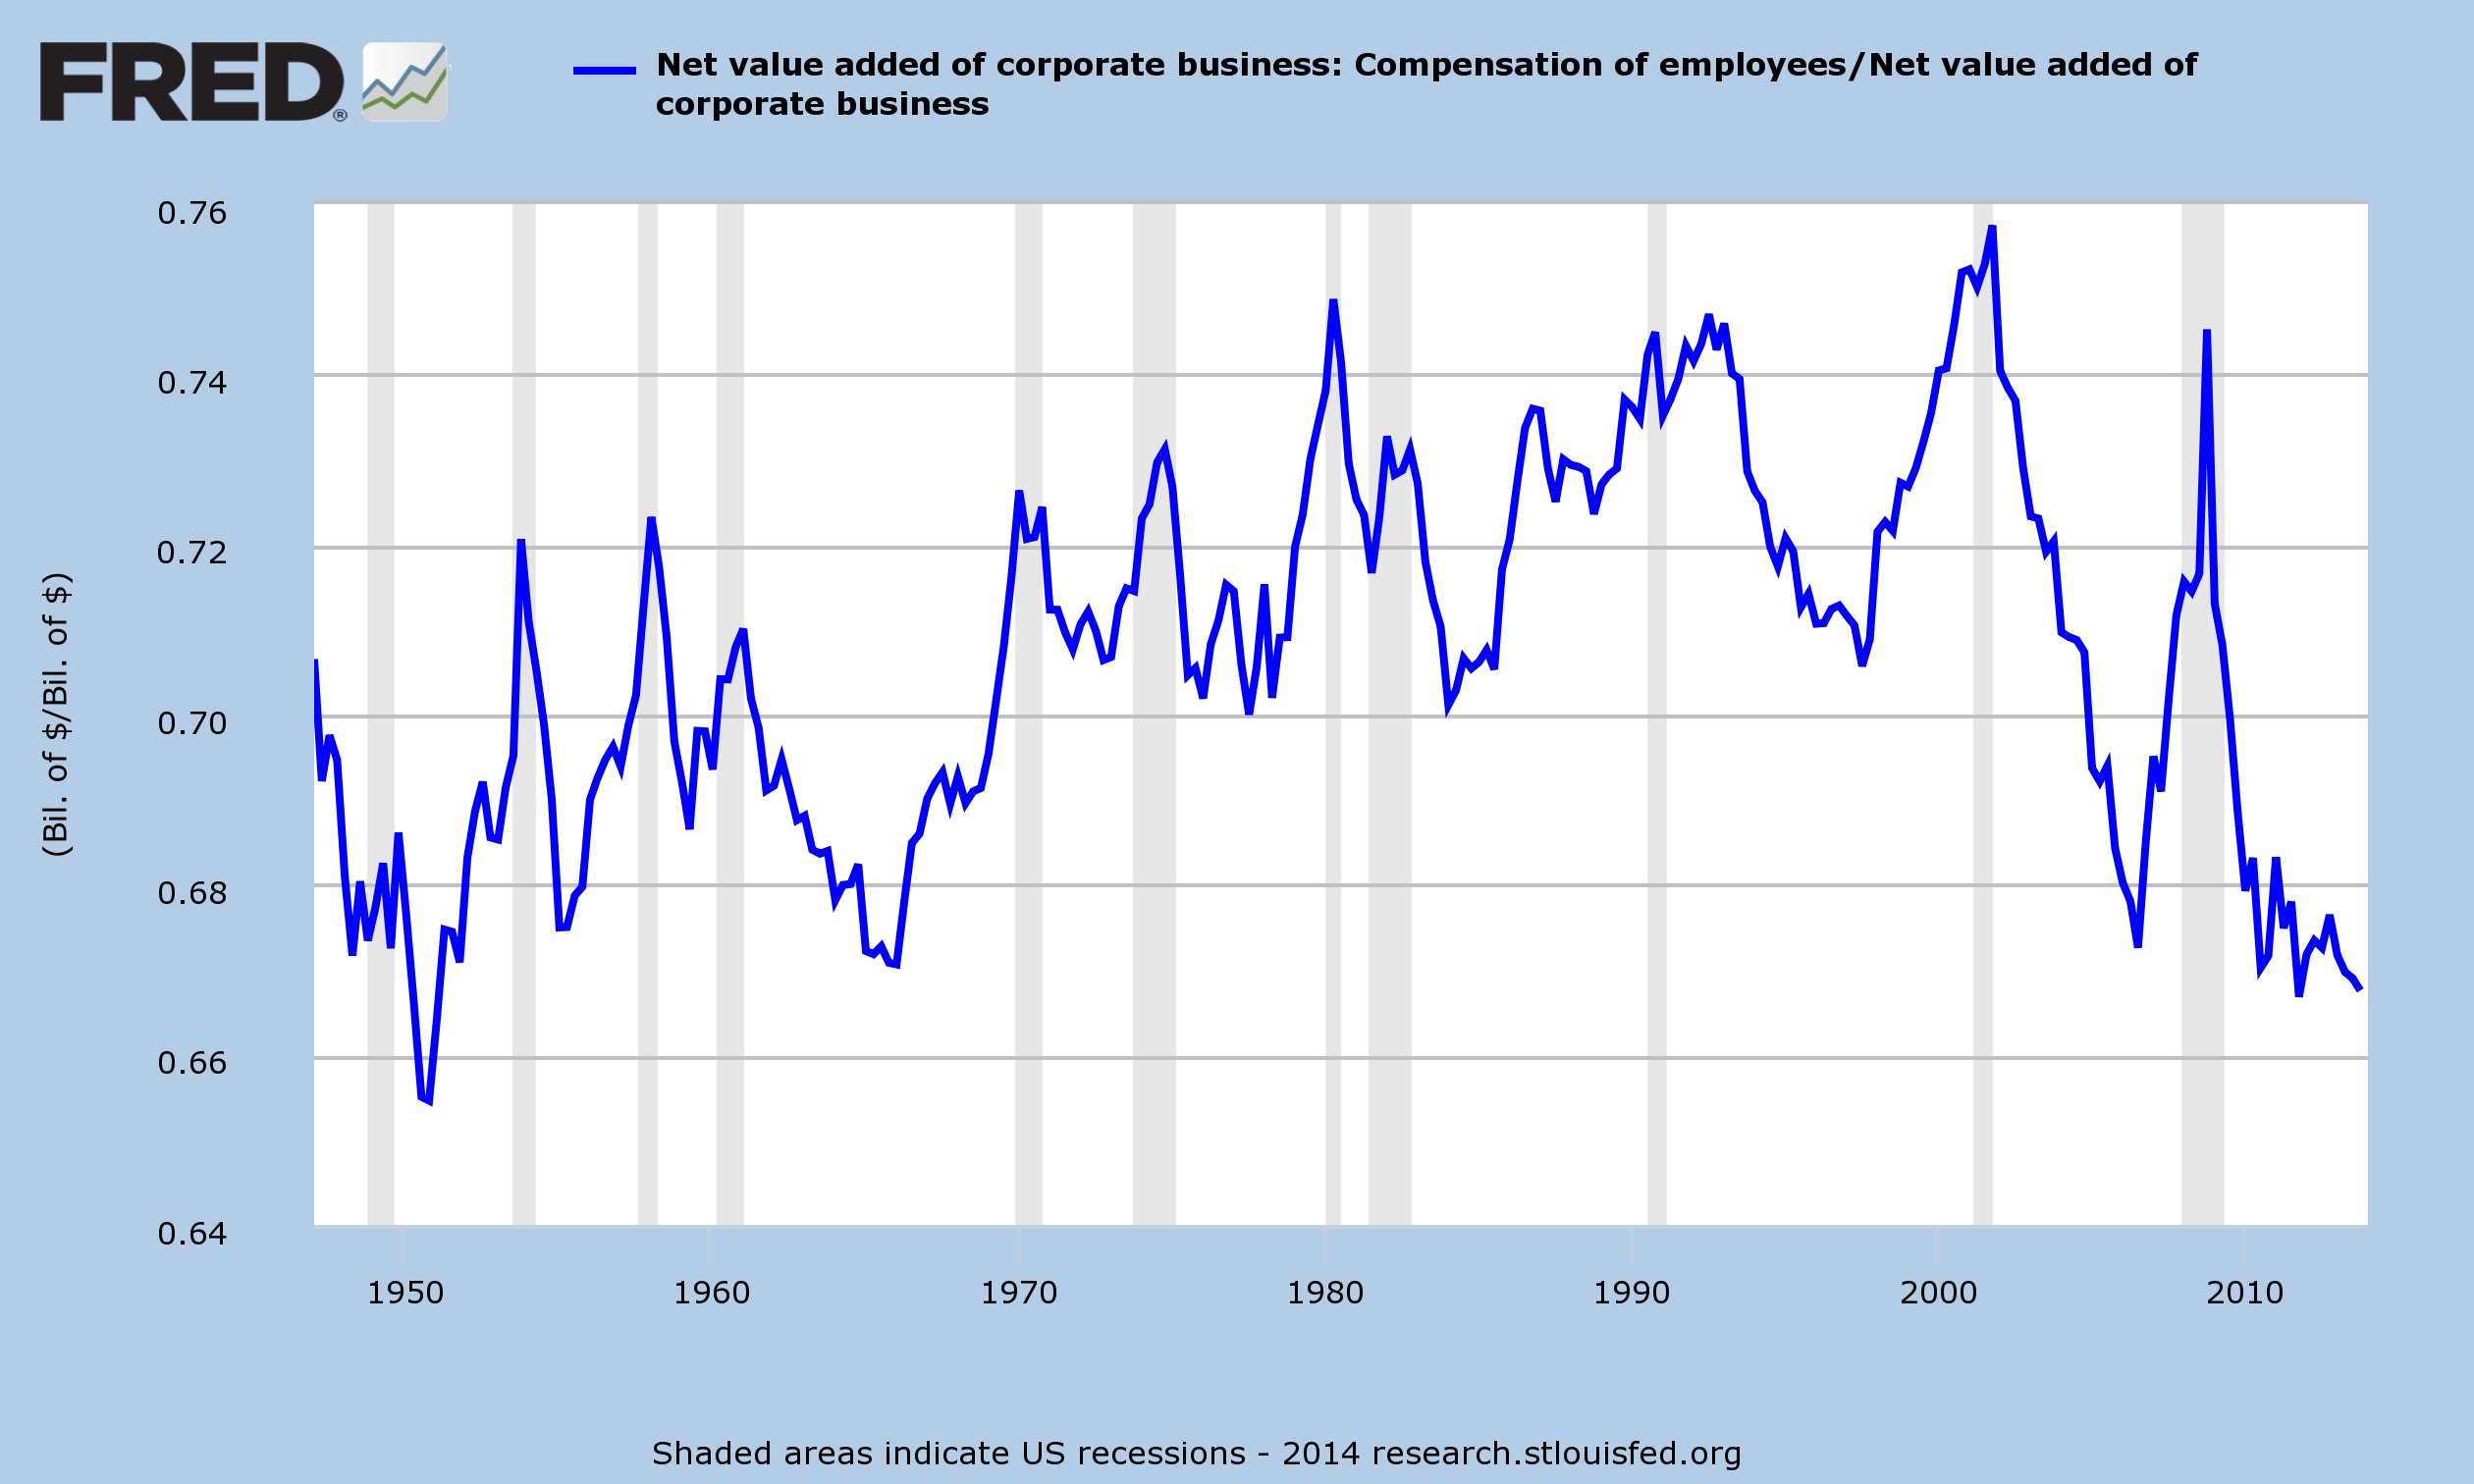 Employee Compensation/Value Added